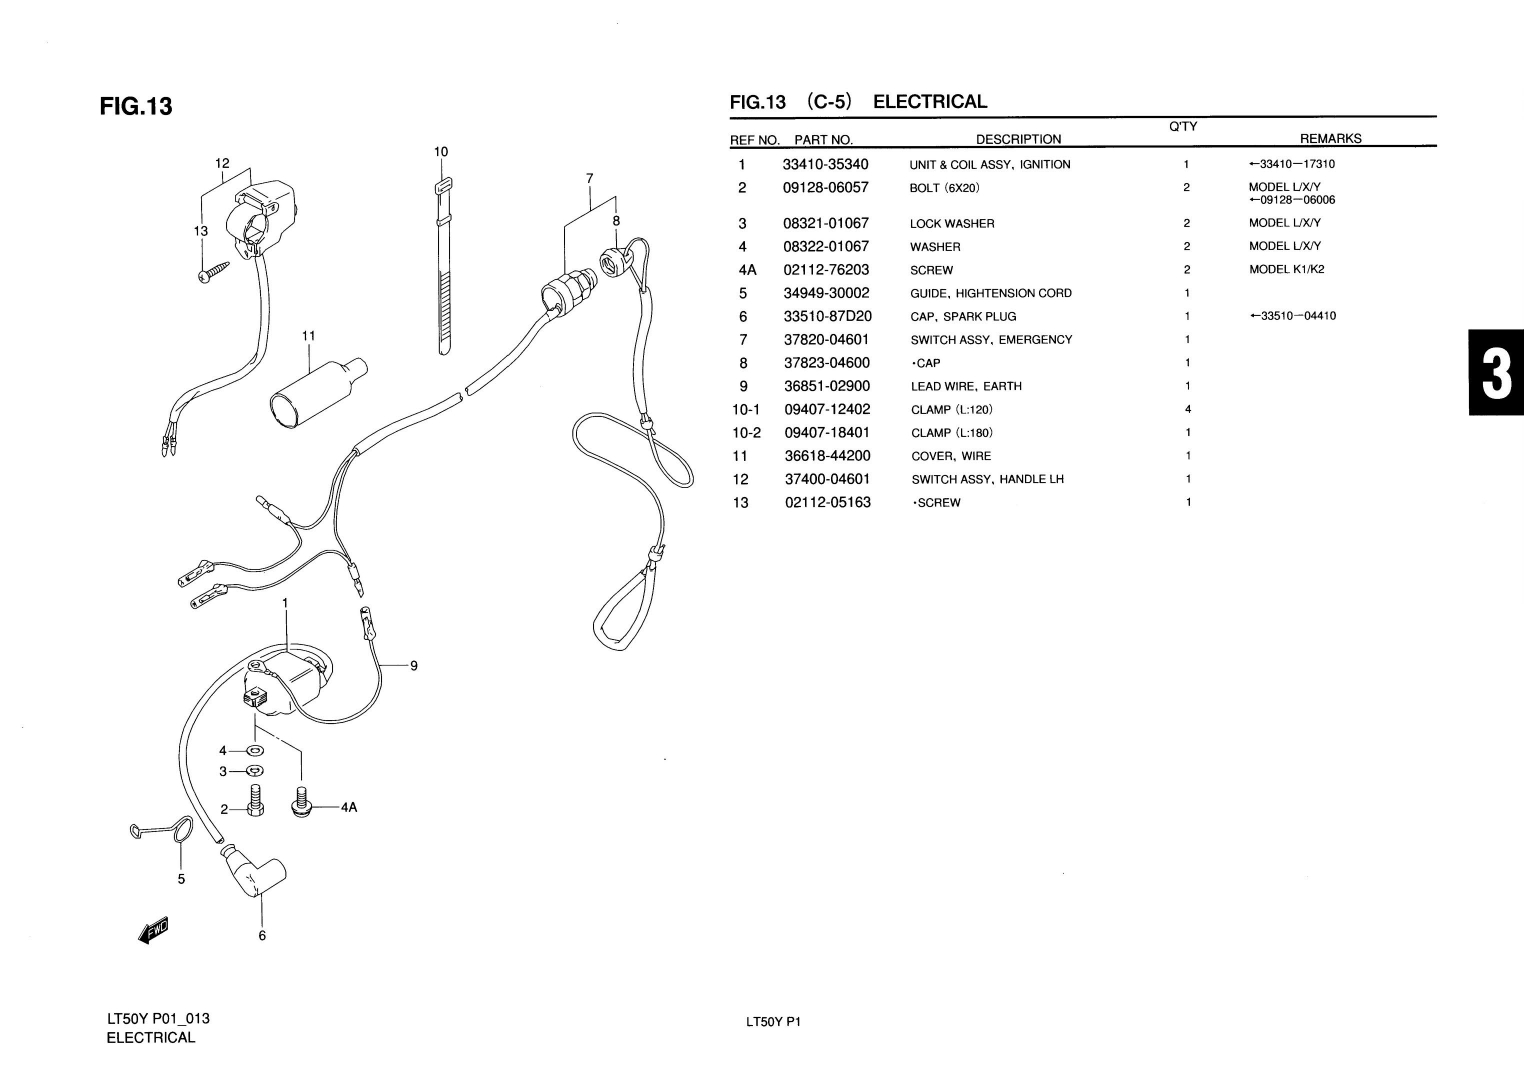 1974 Suzuki Ts185 Wiring Diagram Electrical Diagrams T500 Electric Schematic Gt750